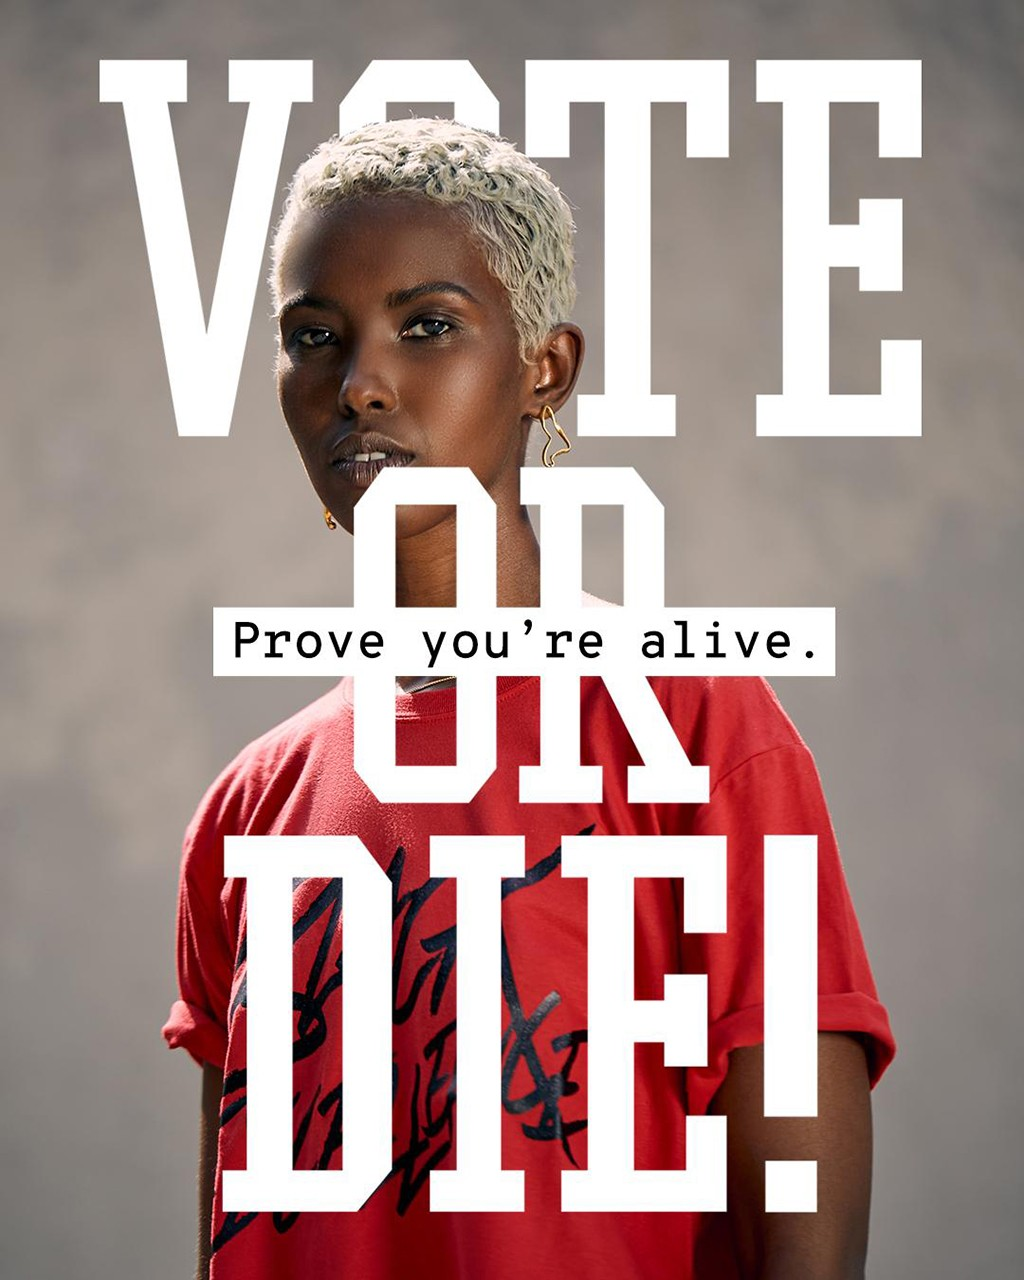 Sean John Vote or Die Campaign Tee Shirts design reissue relaunch p diddy combs collection revolt joe biden donald trump presidential pyer moss black lives matter election 2020